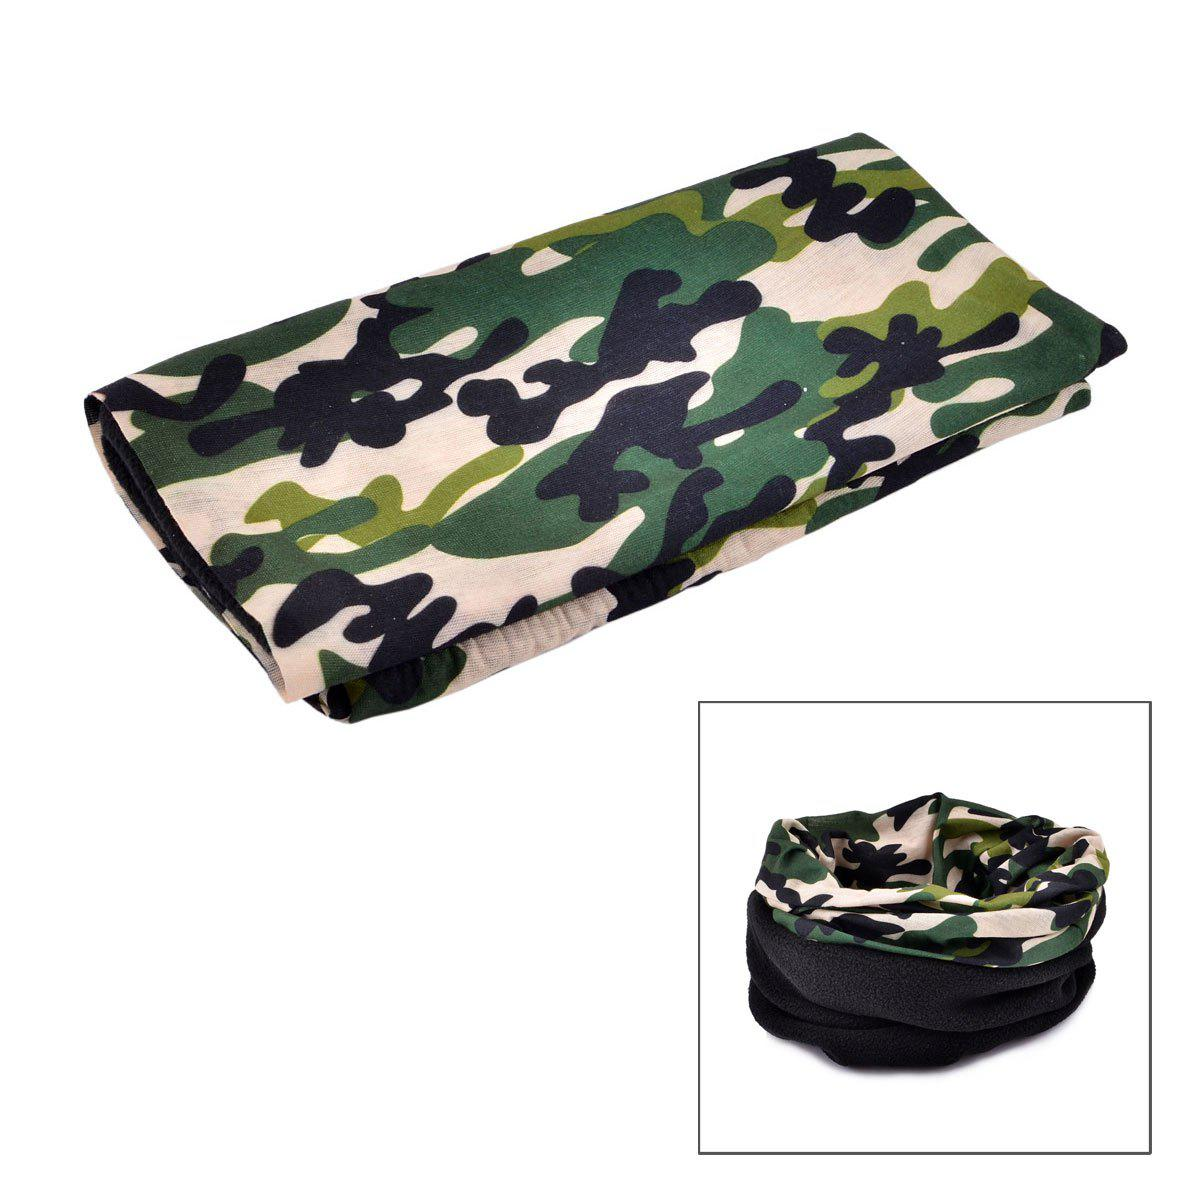 Camouflage Pattern Multifunction Ever-changing Outdoor Coverchief for Hiking and Running -